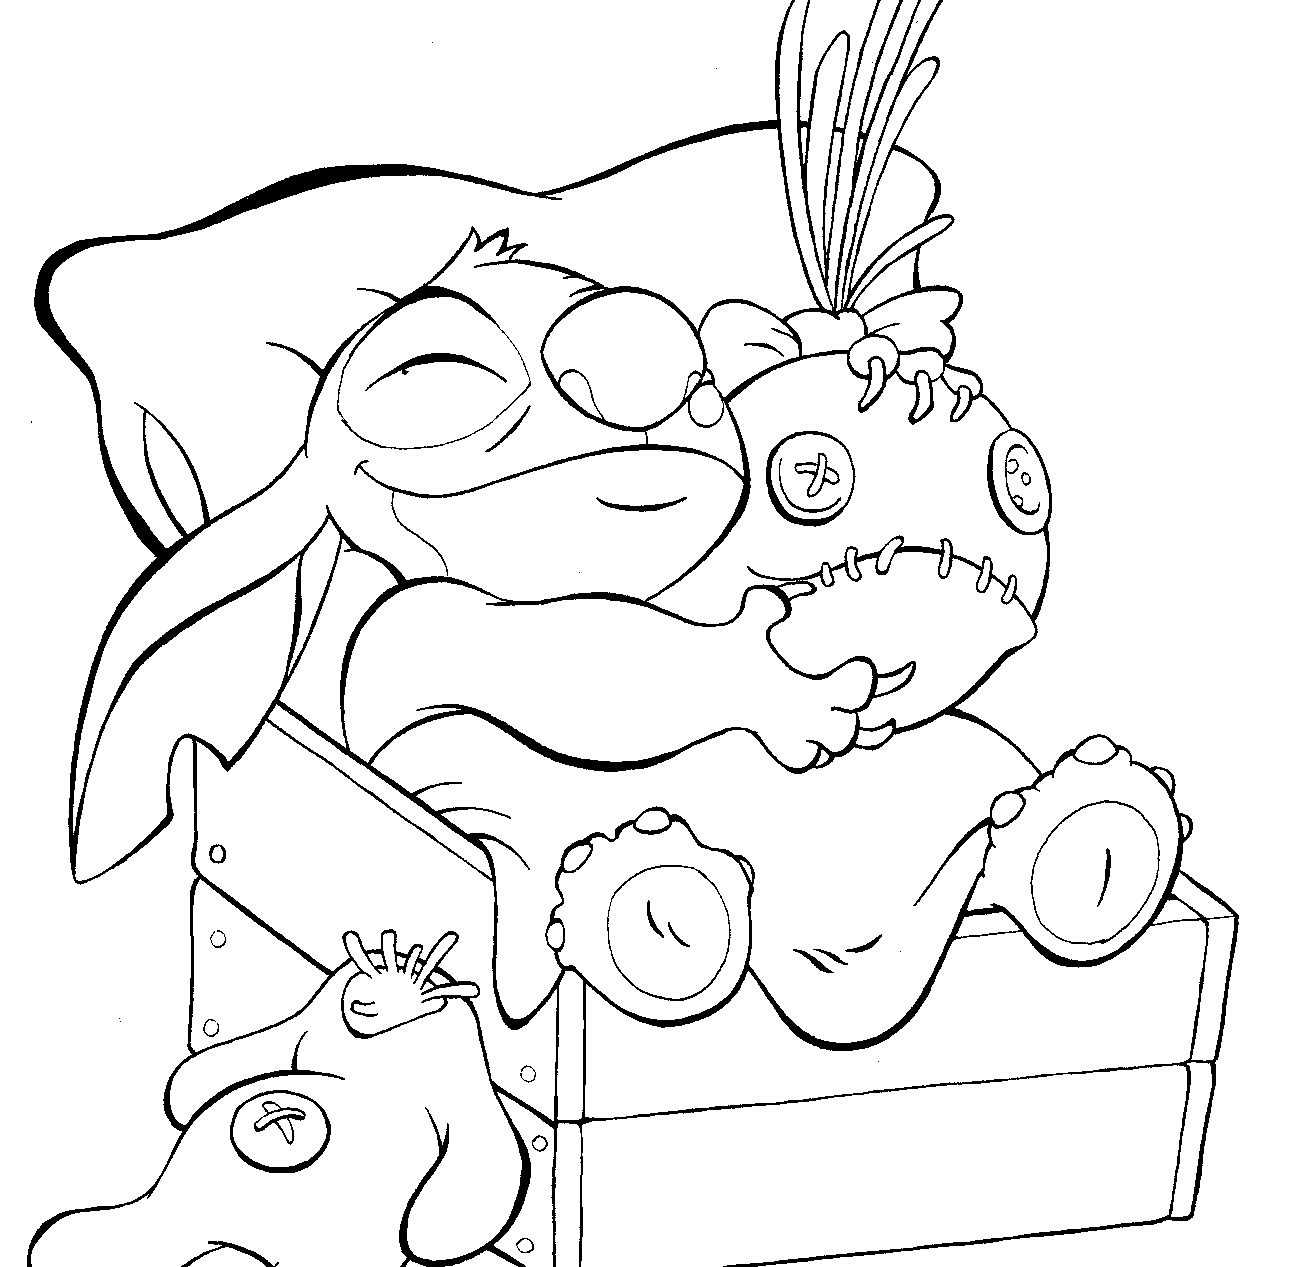 Free coloring pages of by stitch